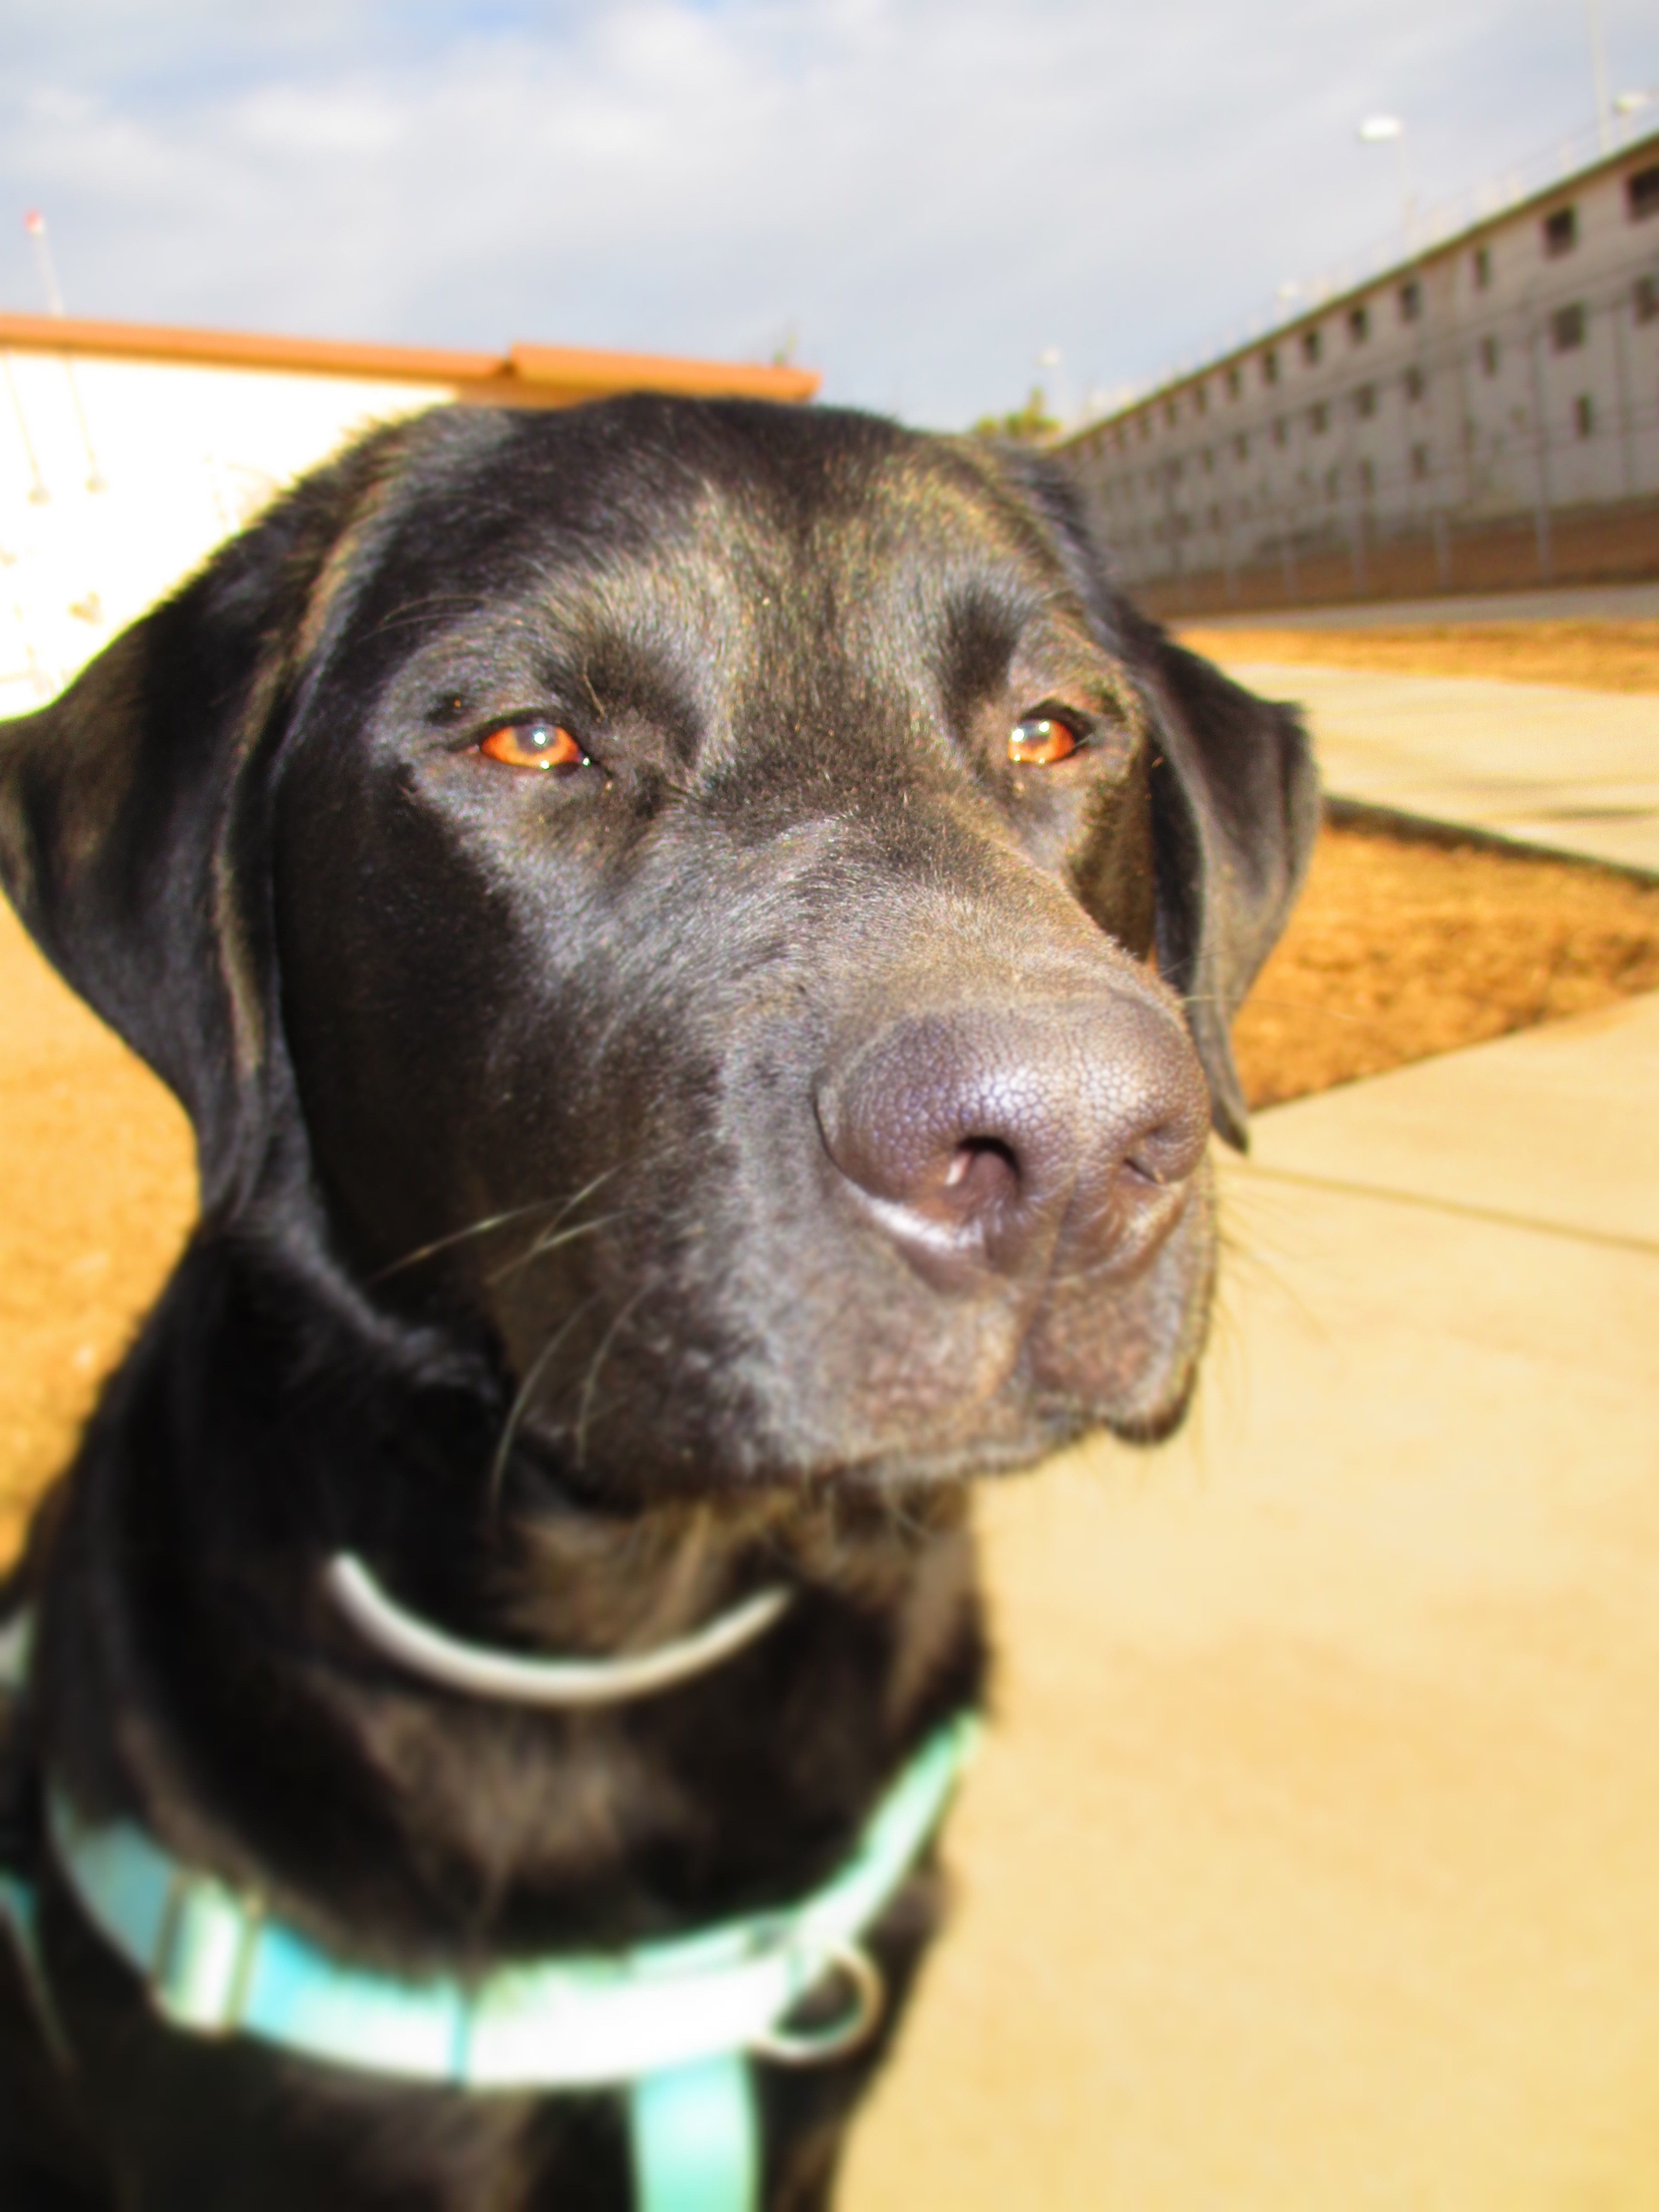 How Prison-Based Animal Programs (PAPs) are Assisting with a Growing Demand for Service Dogs